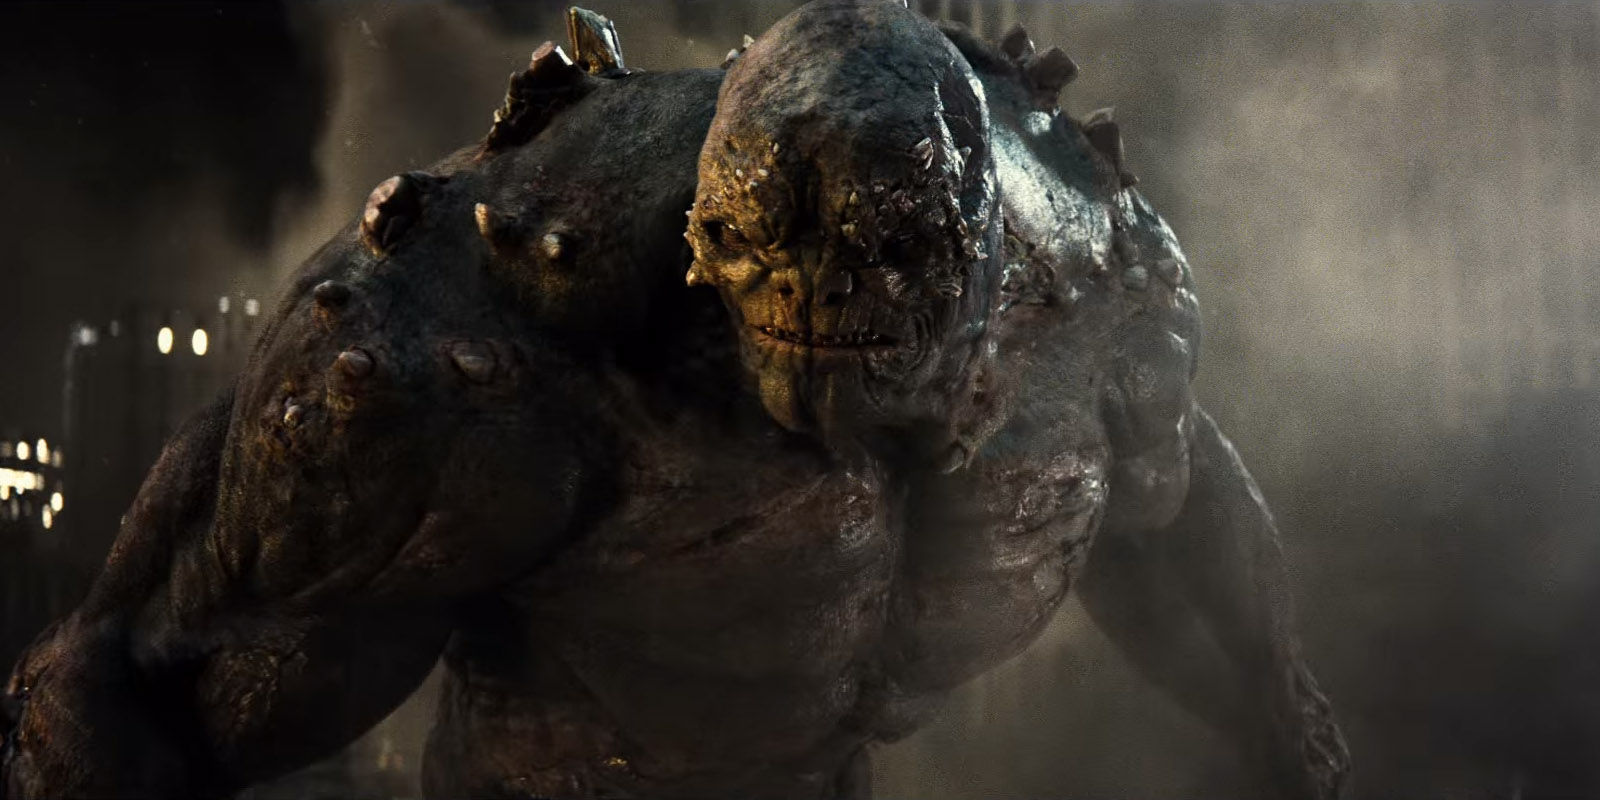 does doomsday look more like abomination or a cave troll toylab